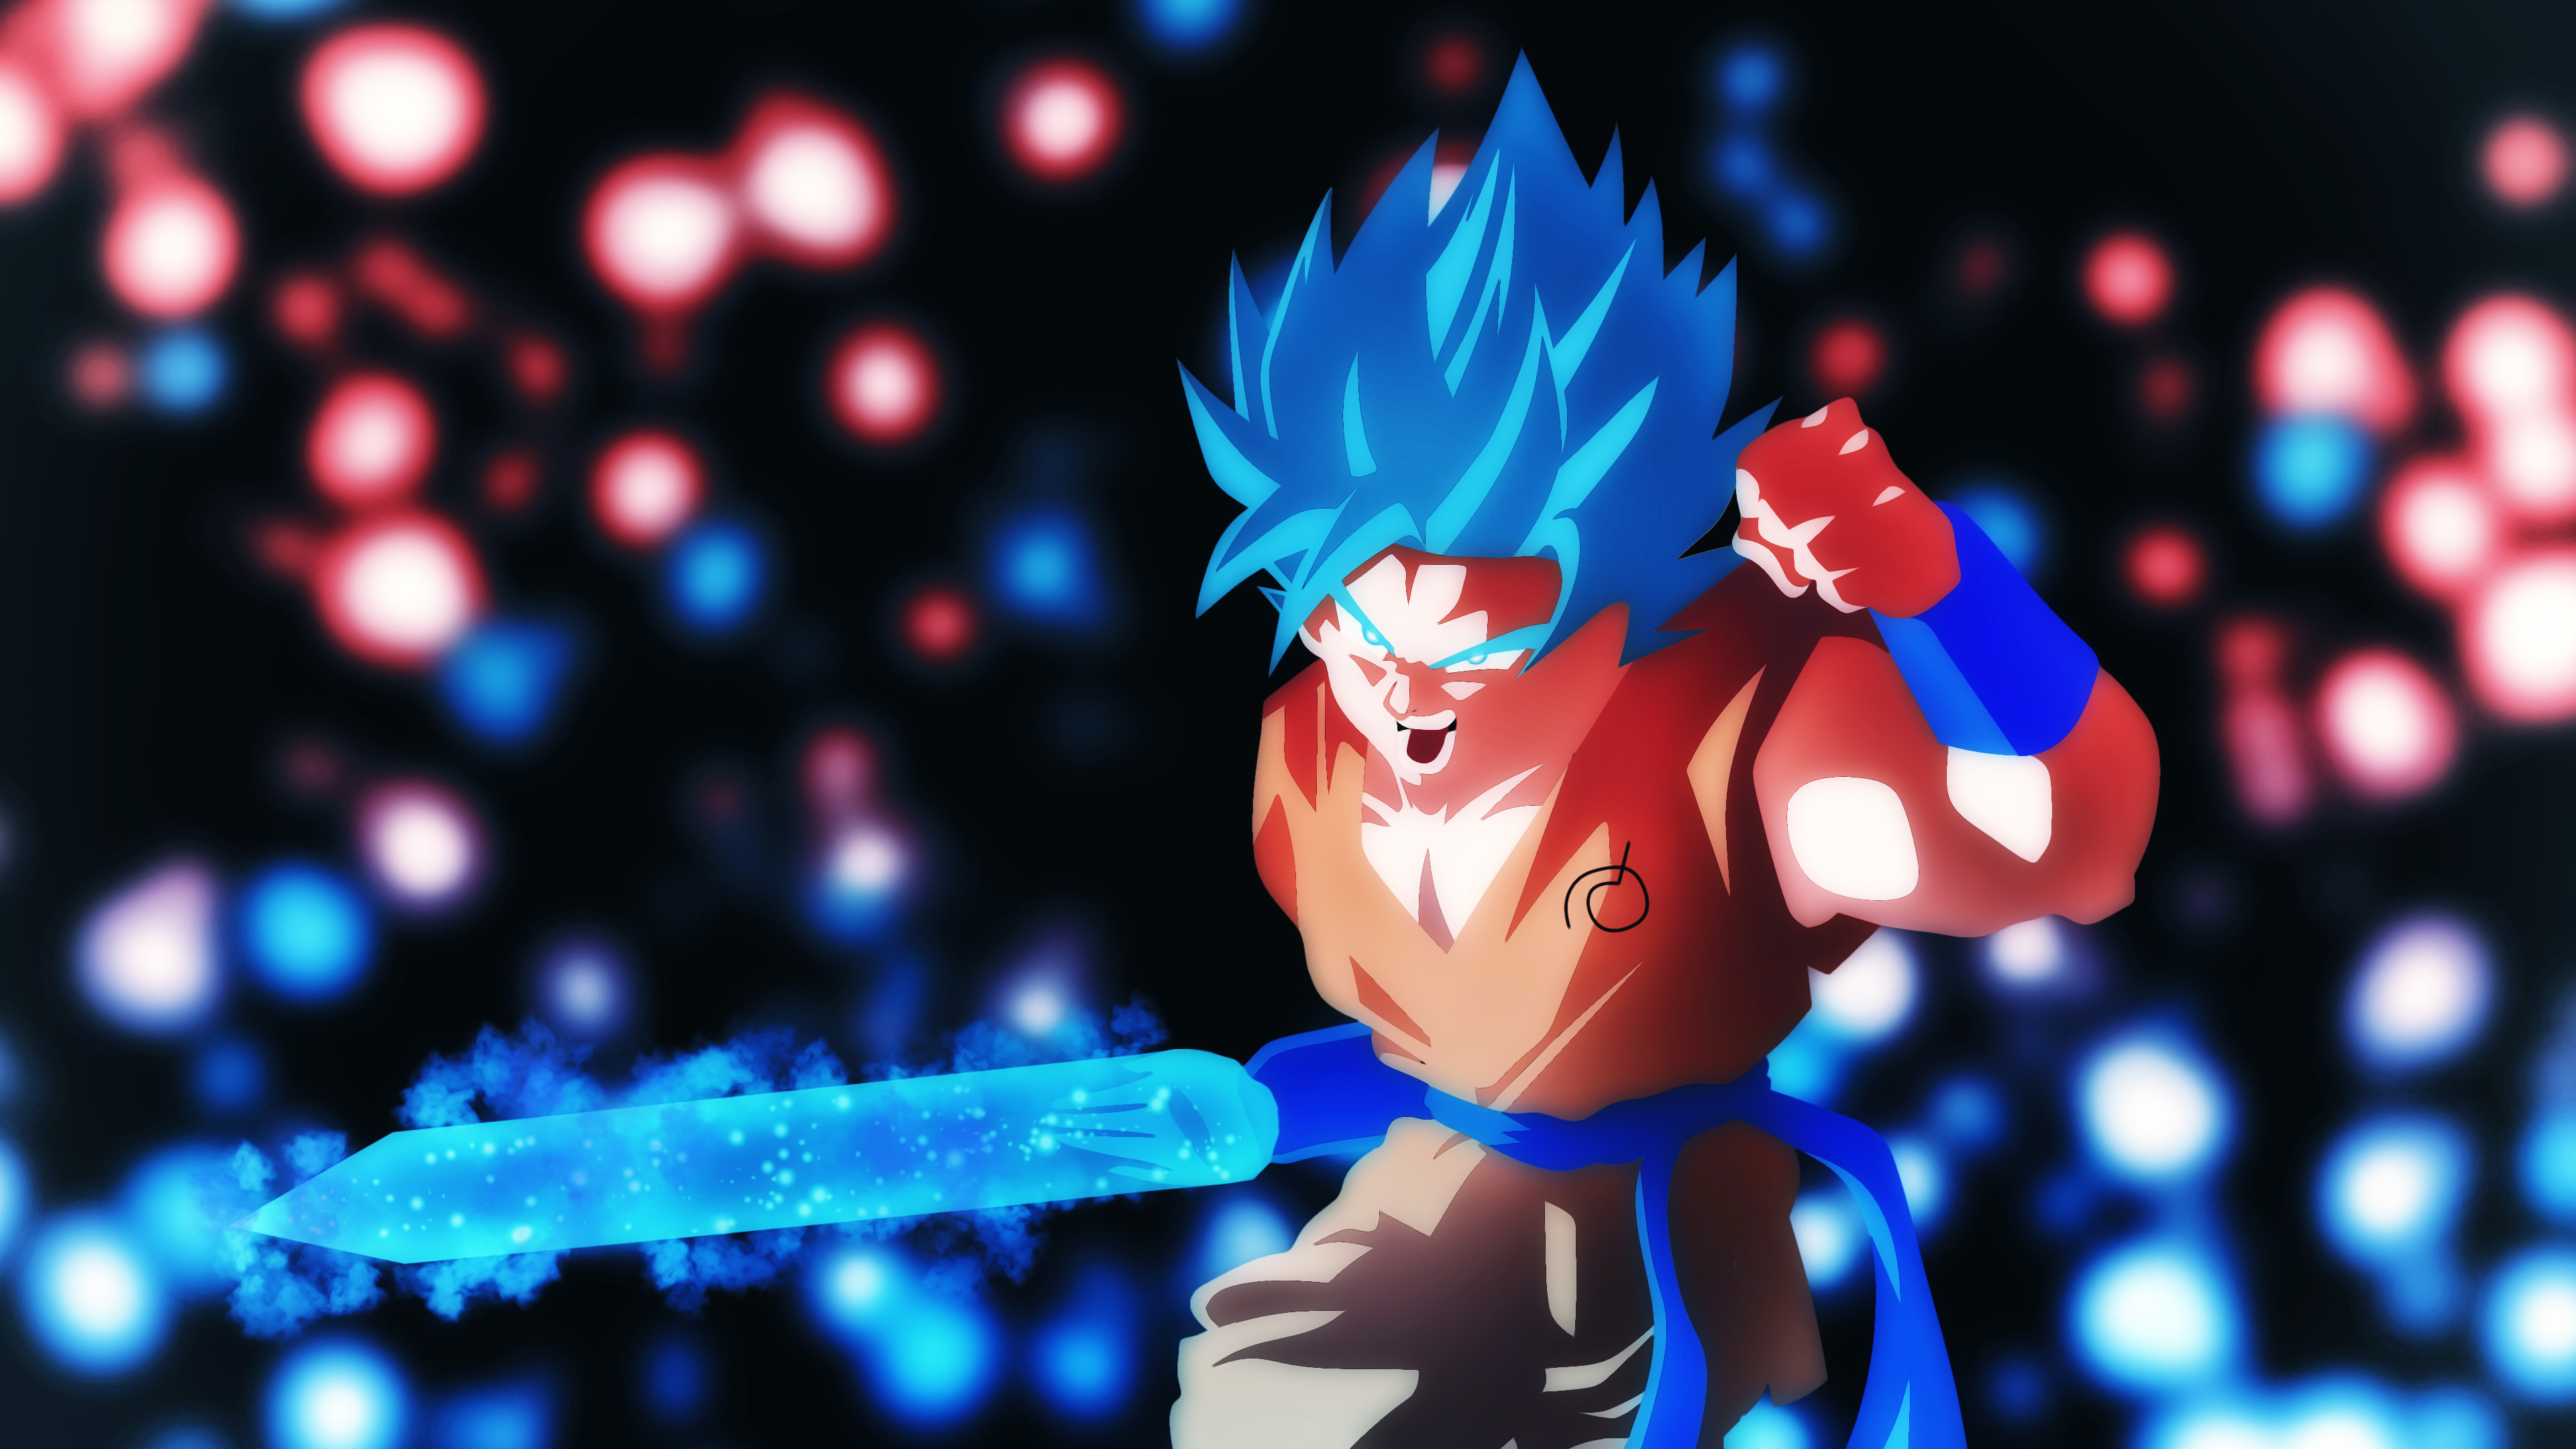 Goku SSB Ki Blade, HD Anime, 4k Wallpapers, Images, Backgrounds, Photos and Pictures